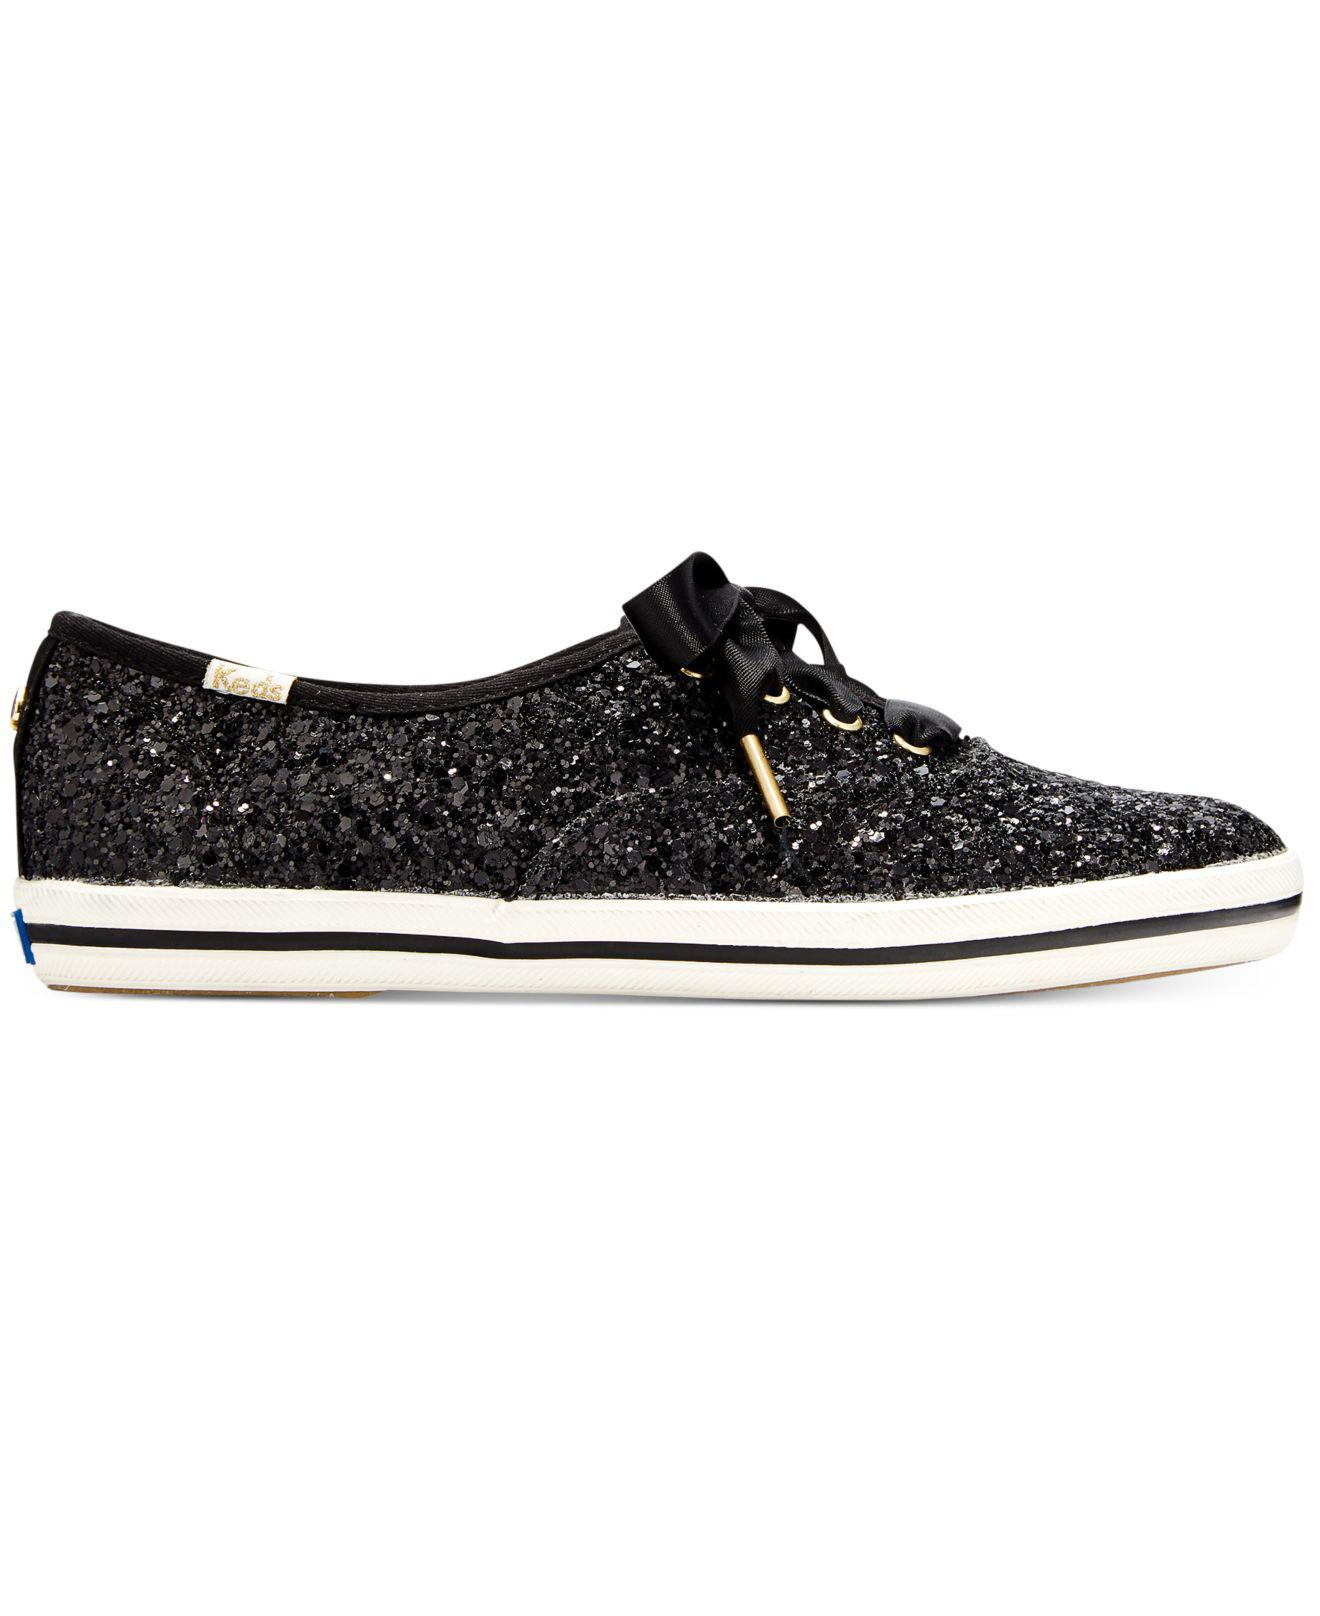 75db88a4a5 Lyst - Kate Spade Glitter Lace-up Sneakers in Black - Save  11.764705882352942%